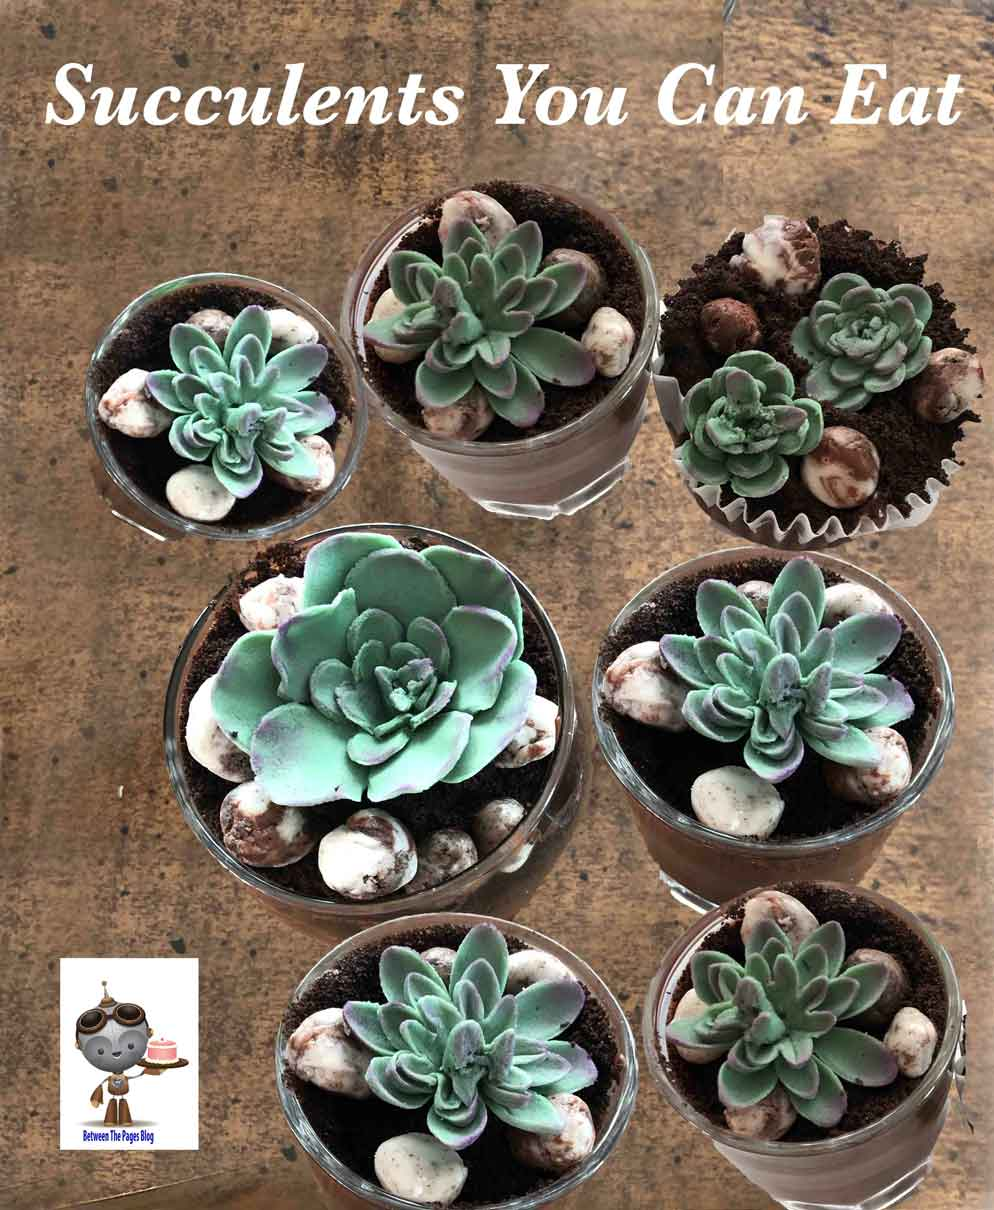 How To Make Succulent Gumpaste Flowers